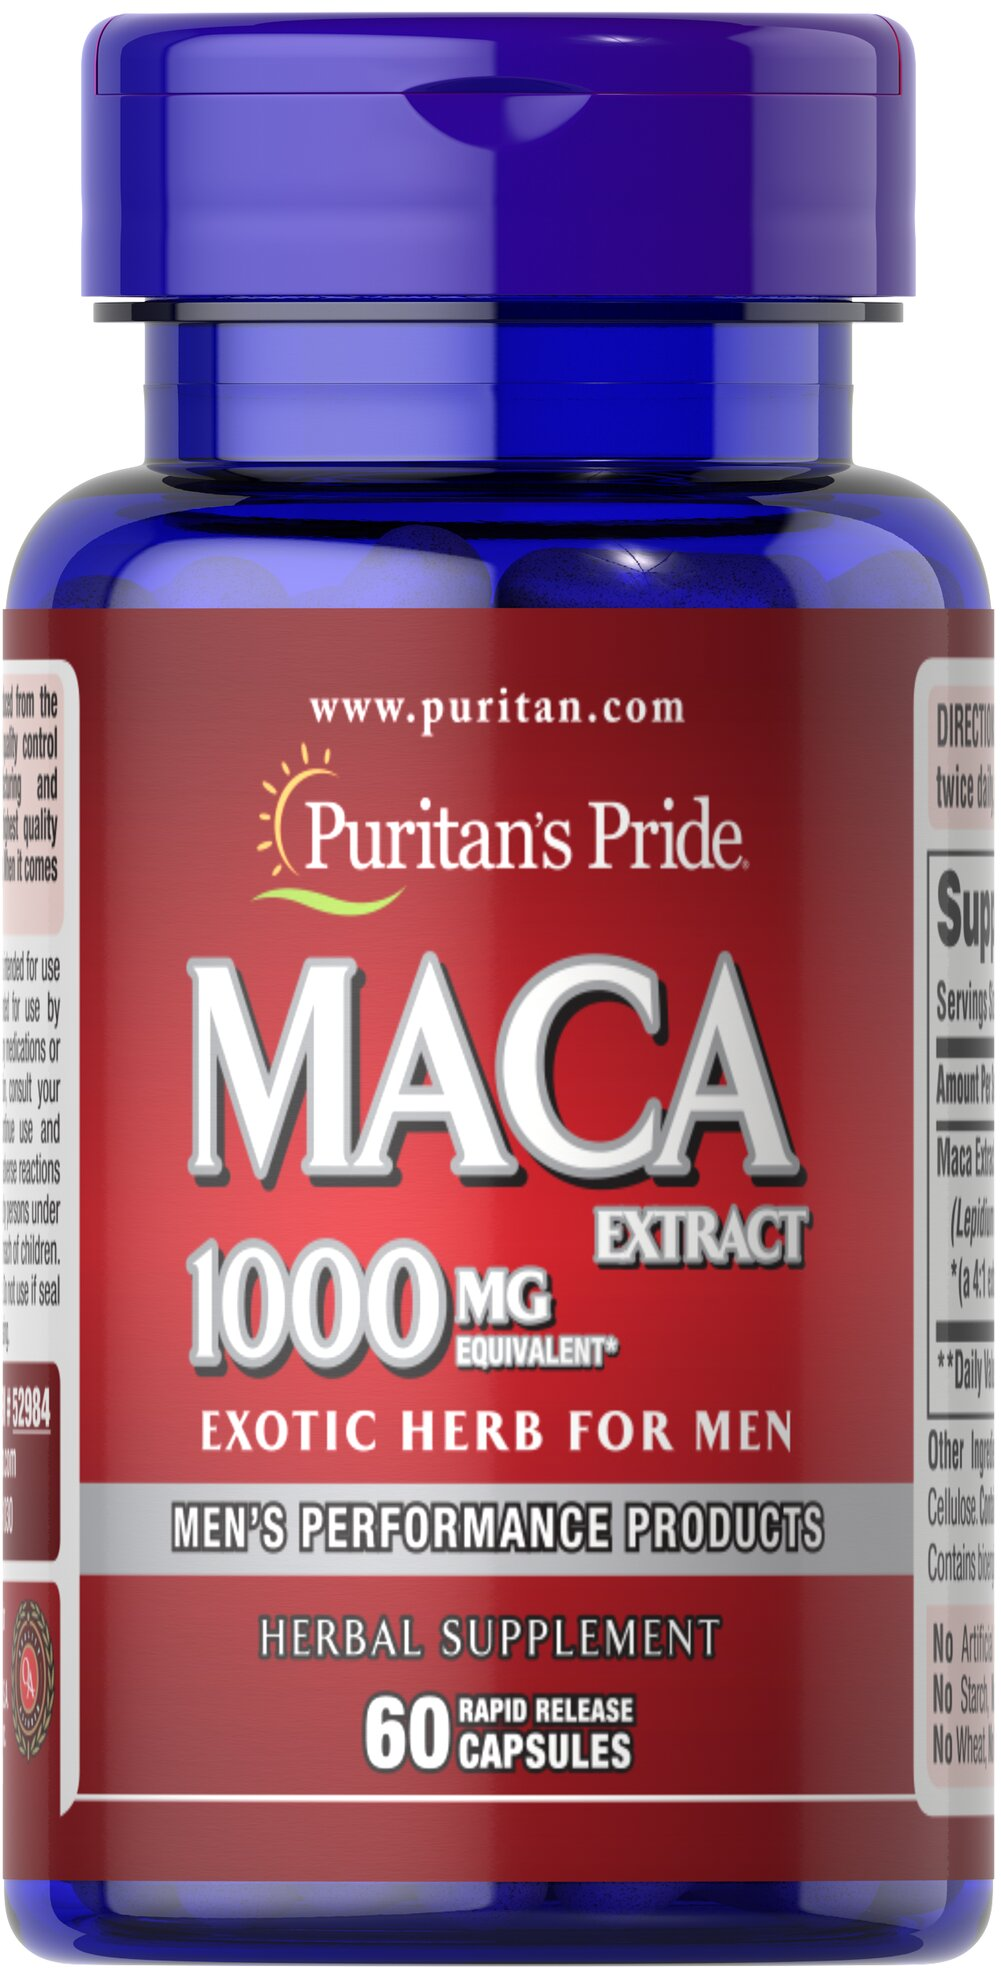 Maca 1000 mg Exotic Herb for Men Thumbnail Alternate Bottle View